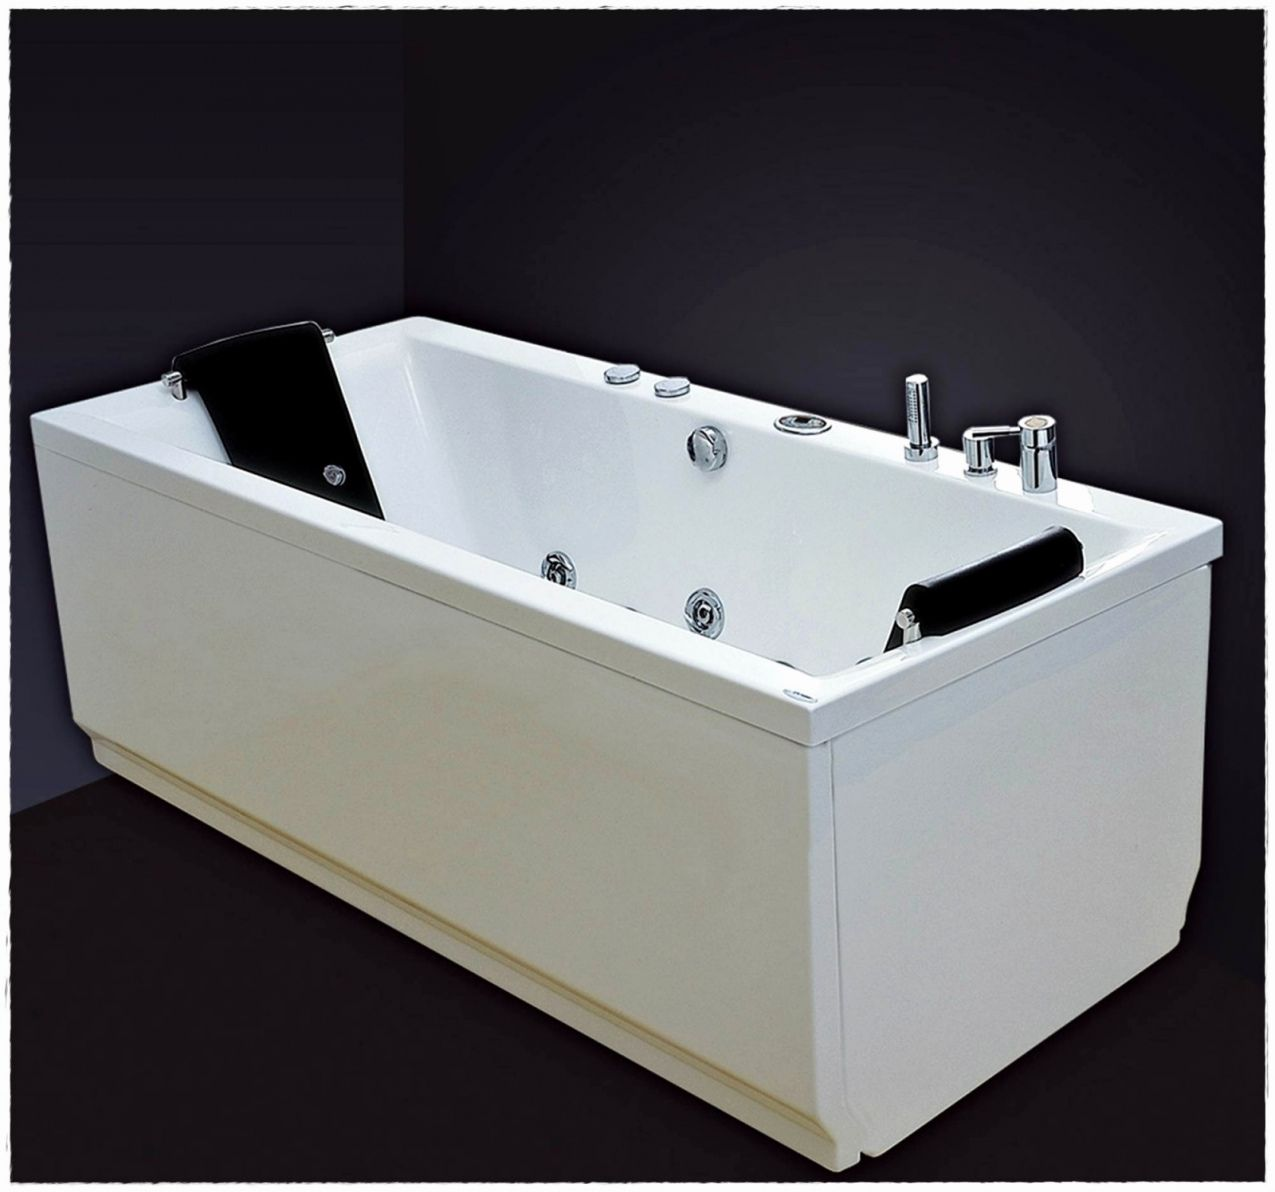 70 Baignoire Angle Pas Cher 2020 With Images Bathtub Bathroom Furniture